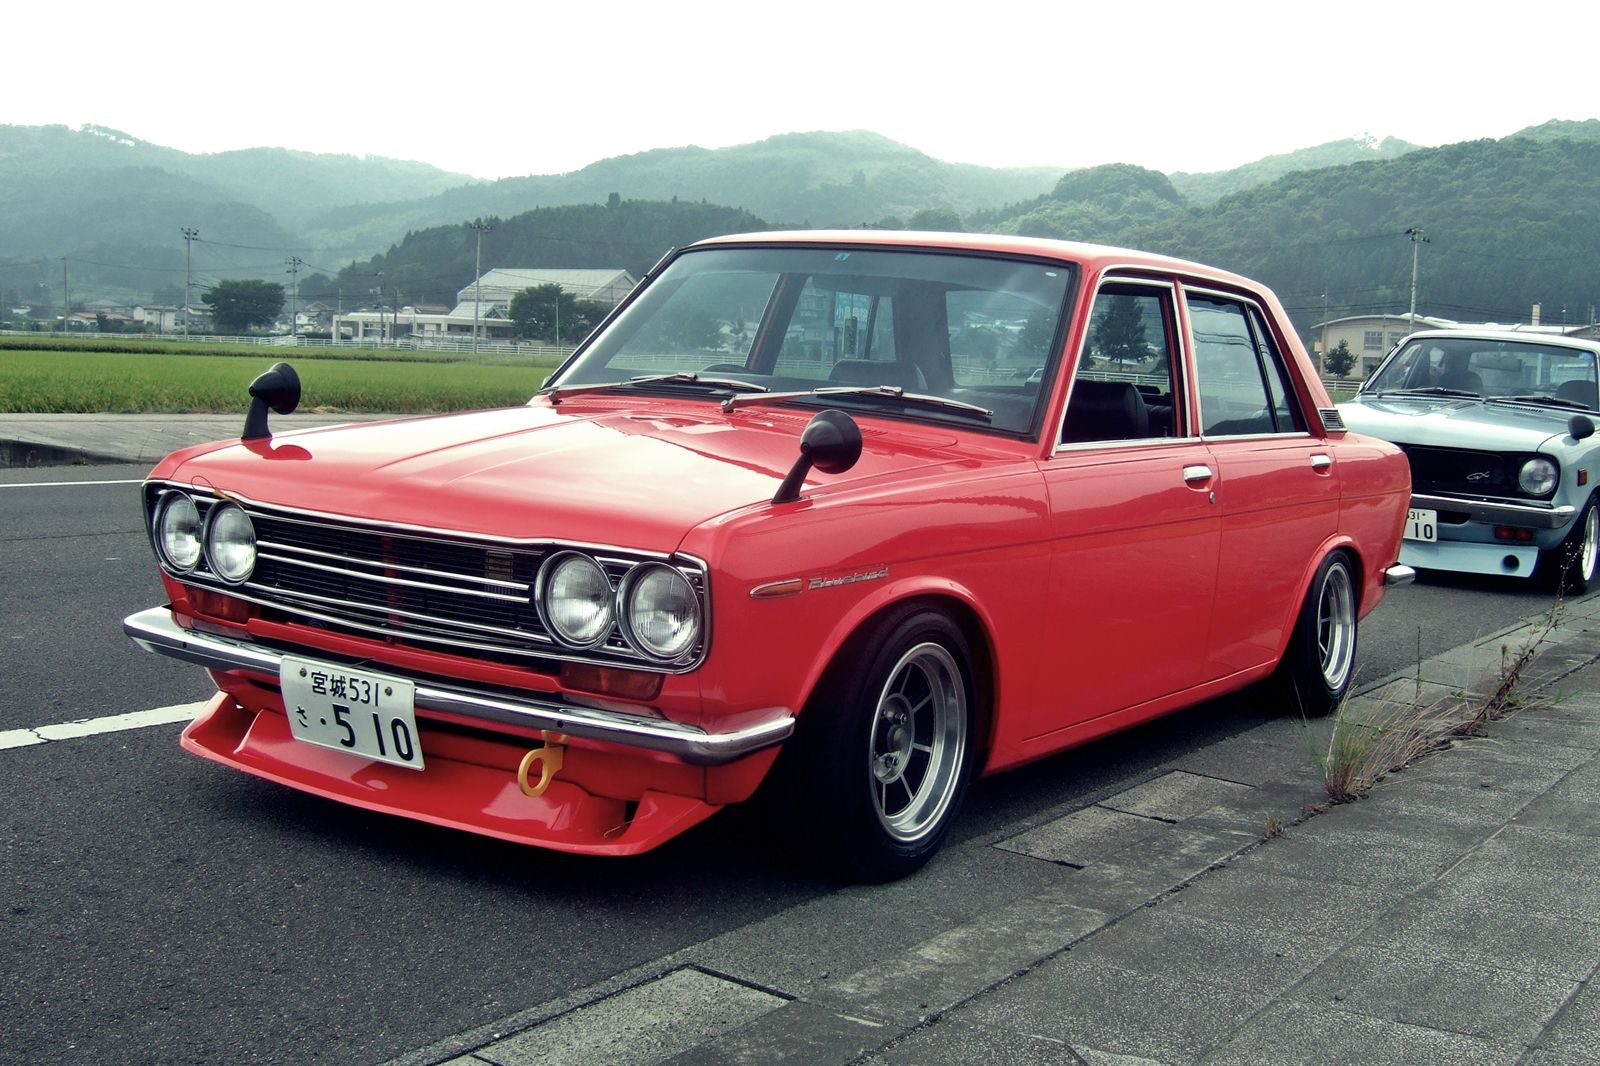 Nissan datsun 510 truck - Datsun 510 Bluebird Modified